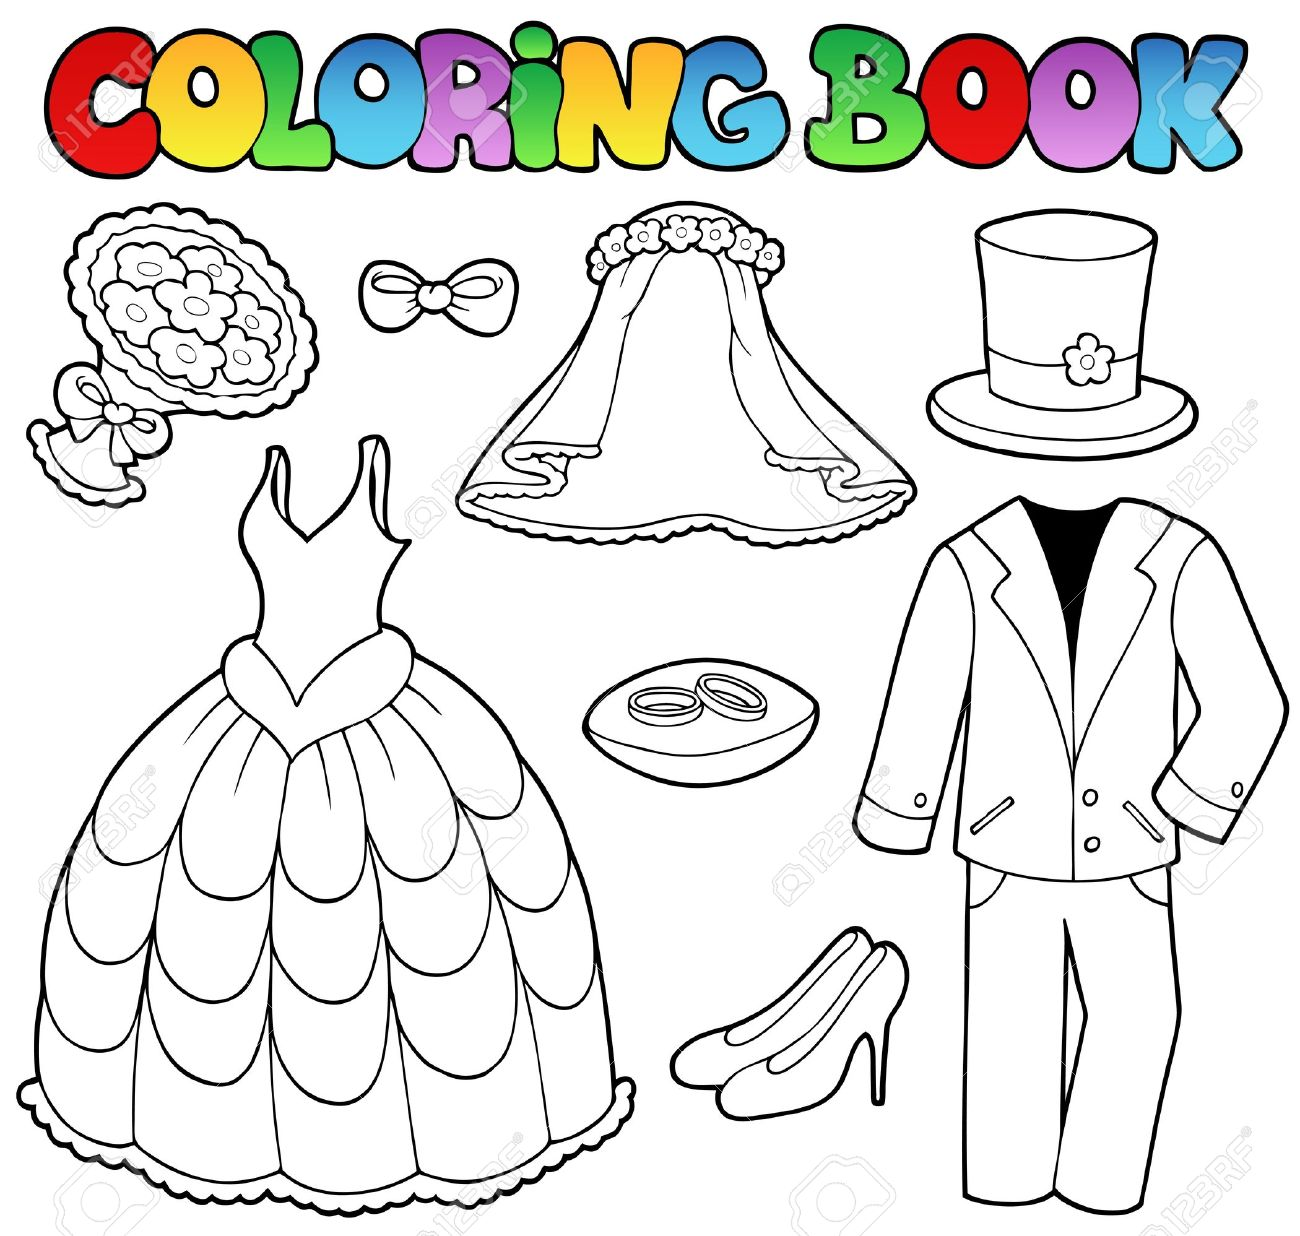 coloring book wedding : Coloring Book With Wedding Clothes Vector Illustration Stock Vector 9528317